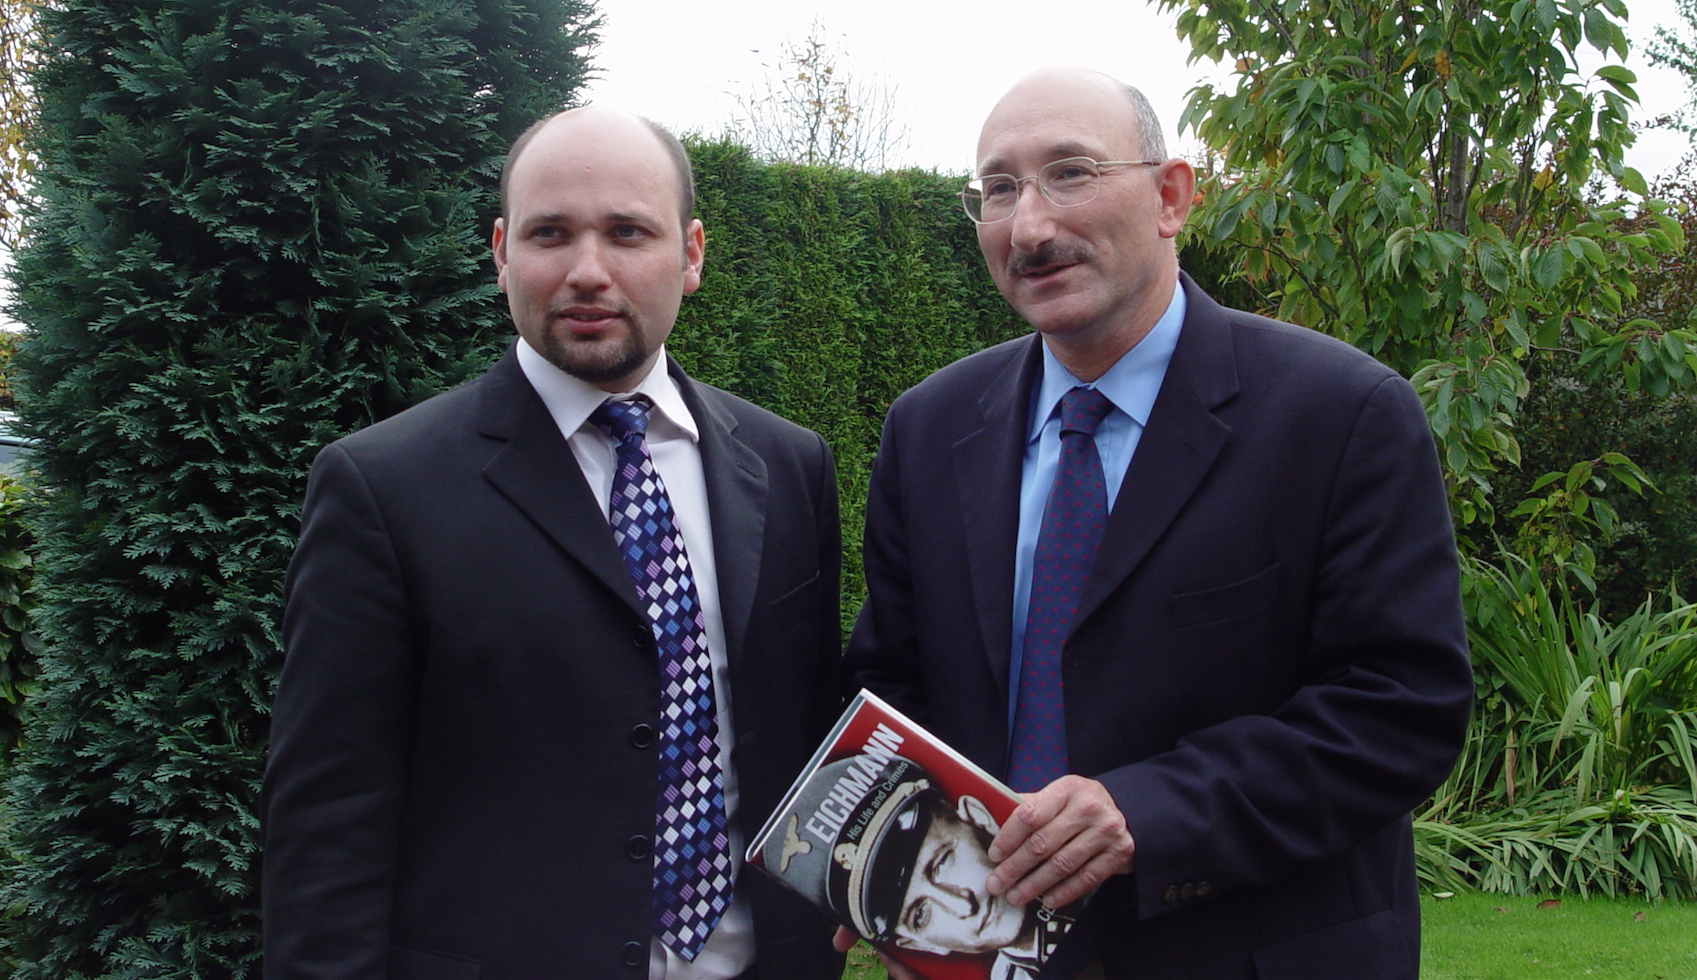 Prof. David Cesarani (right) with Dr James Smith at the National Holocaust Centre during the launch of Cesarani's book 'Eichmann: his life and crimes'.